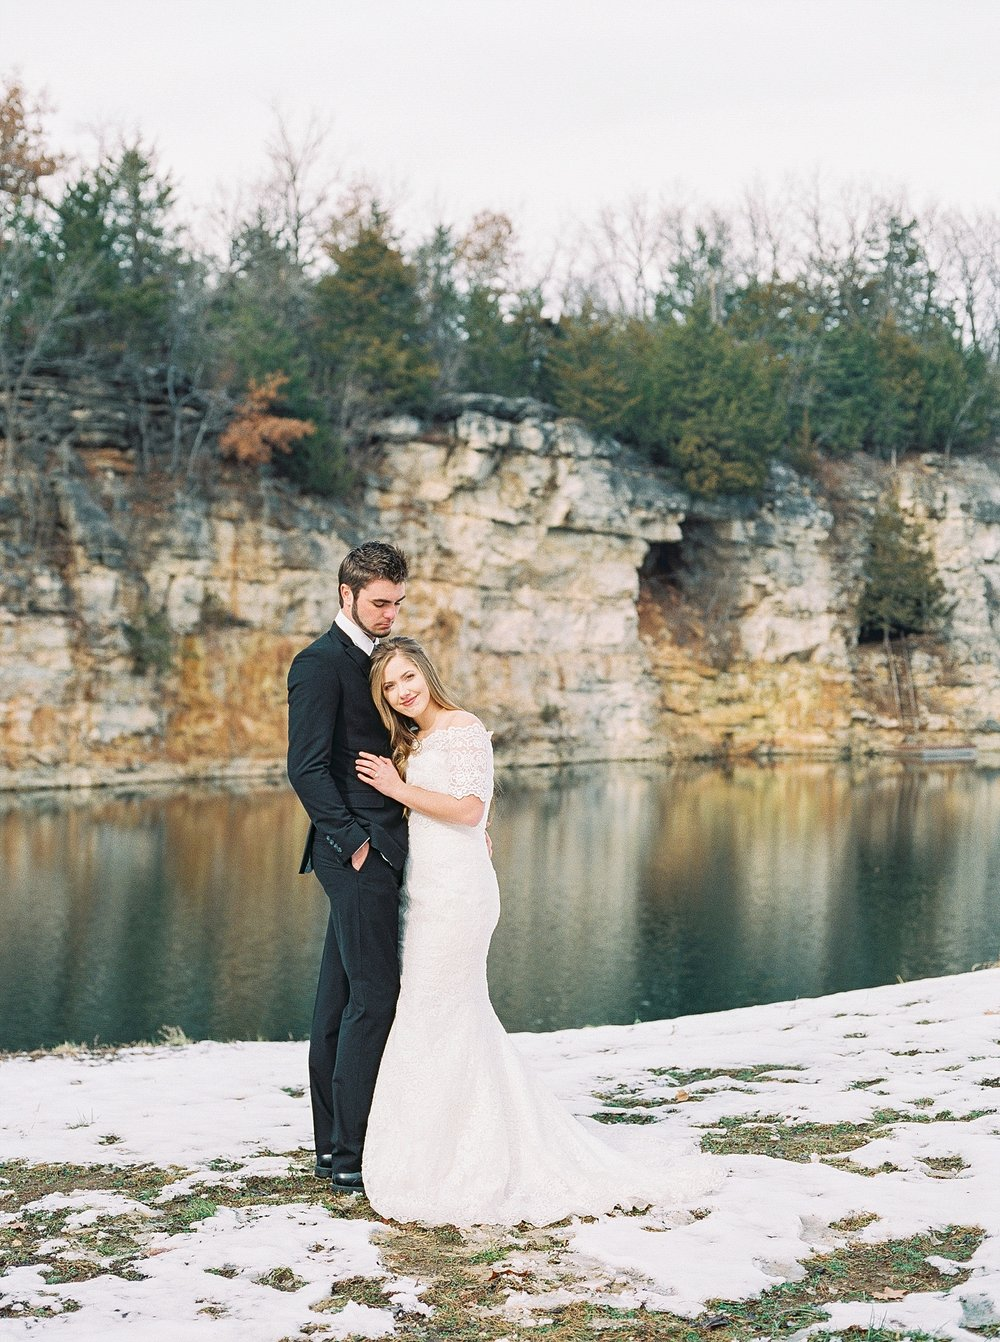 Snowy Winter Wedding at Wildcliff Events Lake With Earthy Jewel Tones and Organic Refined Style by Kelsi Kliethermes Photography Kansas City Missouri Wedding Photographer_0134.jpg